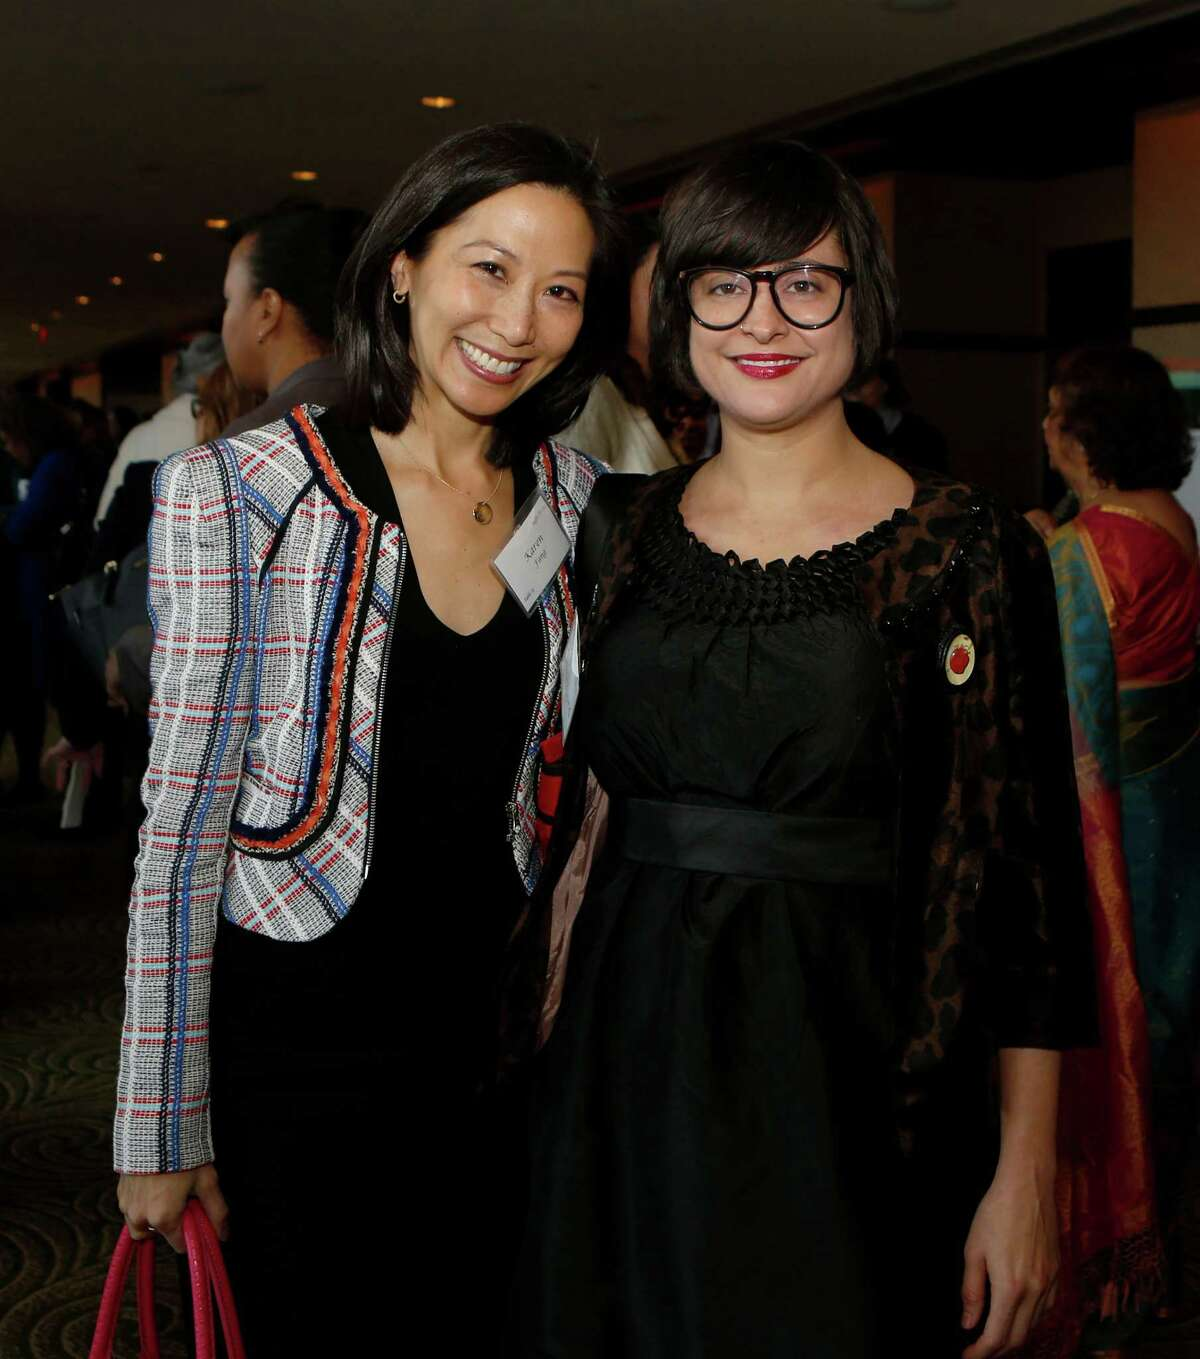 Karen Fang and Sarah Luna at the 18th annual Table Talk event at the Hilton America's Hotel.